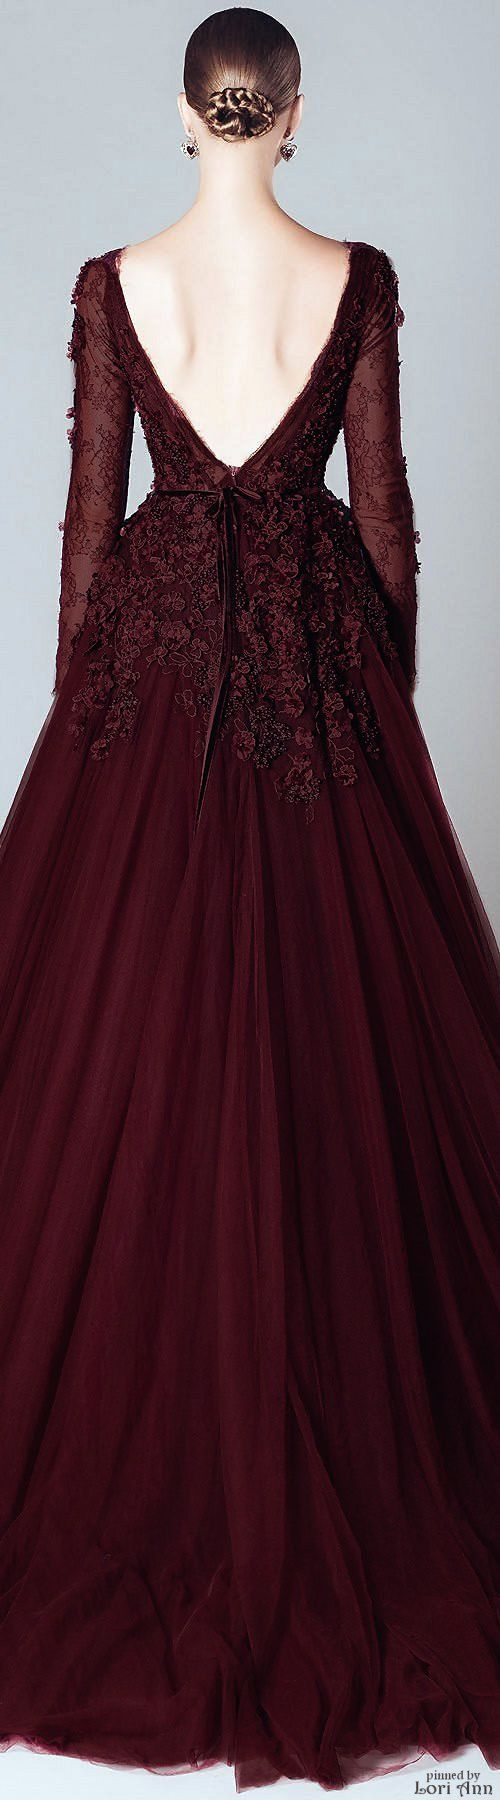 ⚜pinterest elegant point⚜ (mit bildern) | abendkleid